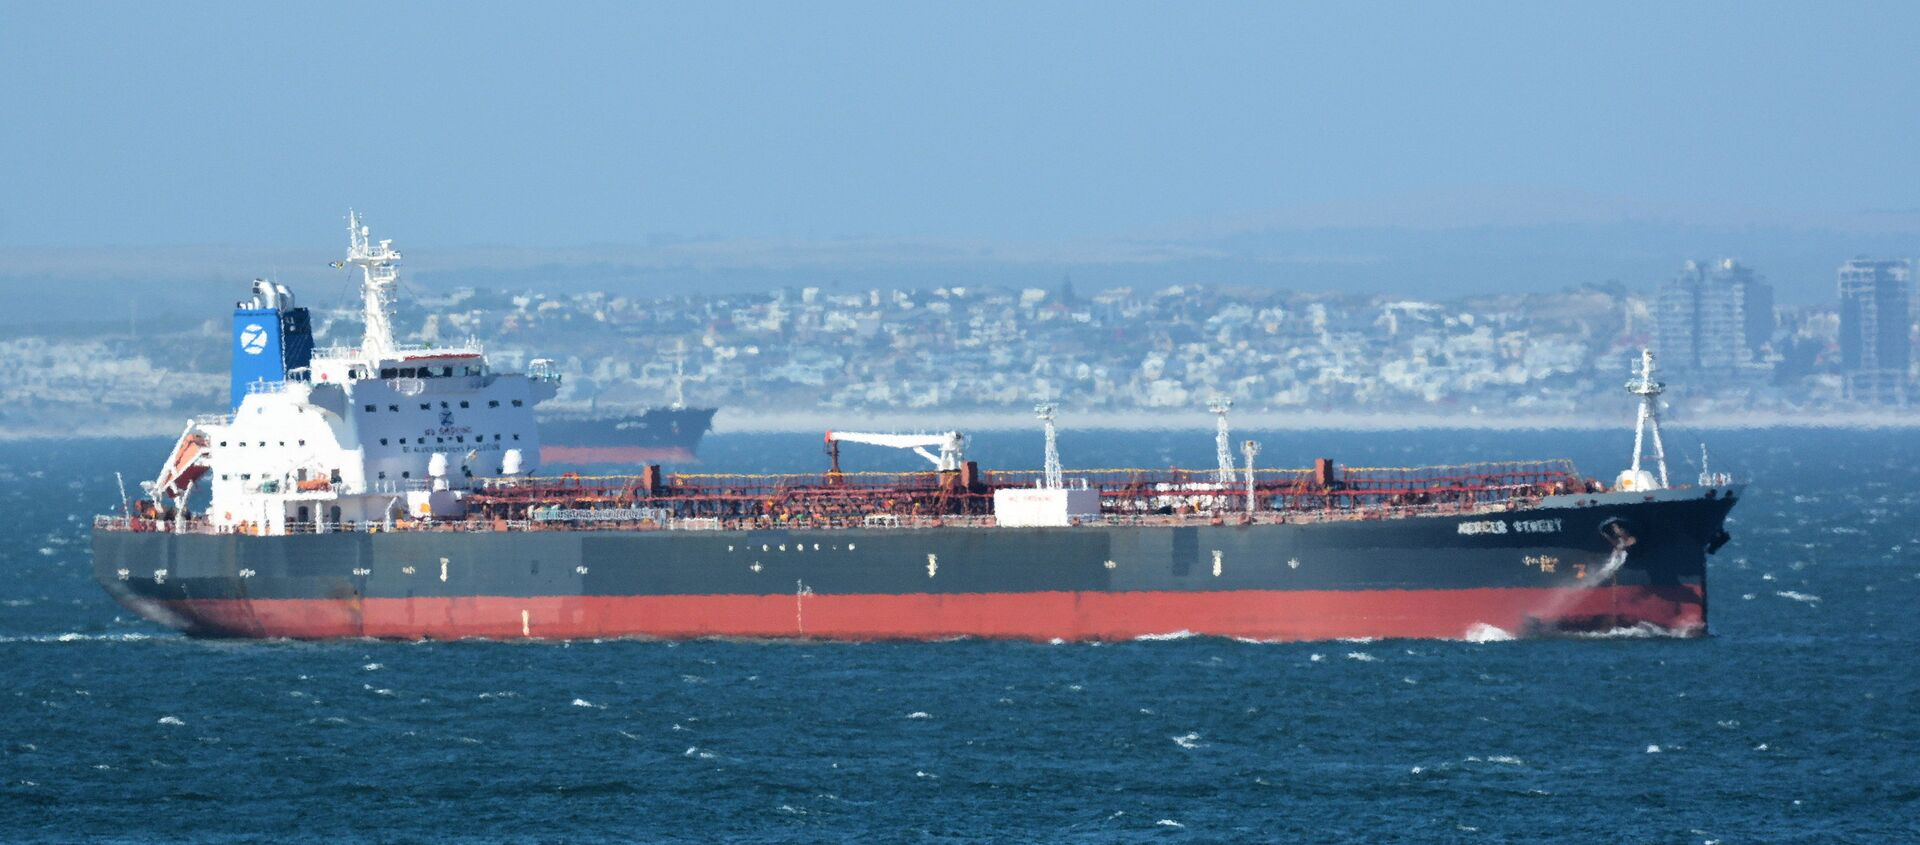 The Mercer Street, a Japanese-owned Liberian-flagged tanker managed by Israeli-owned Zodiac Maritime that was attacked off Oman coast as seen in Cape Town, South Africa, December 31, 2015  in this picture obtained from ship tracker website, MarineTraffic.com. Picture taken December 31, 2015.  Johan Victor/Handout via REUTERS THIS IMAGE HAS BEEN SUPPLIED BY A THIRD PARTY. MANDATORY CREDIT. NO RESALES. NO ARCHIVES. - Sputnik International, 1920, 04.08.2021